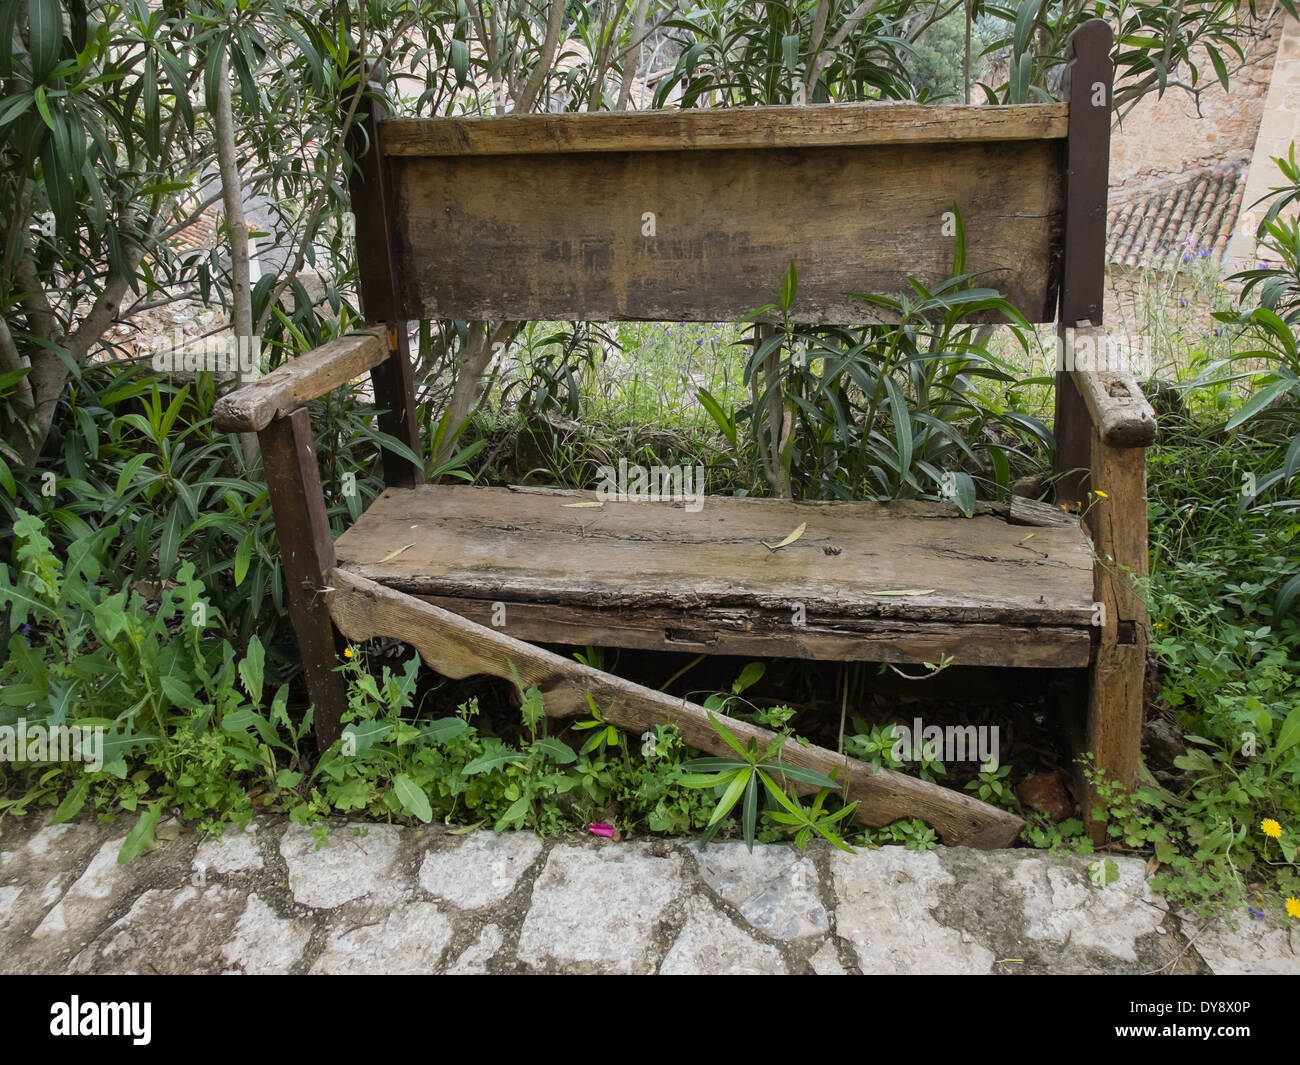 Old Wooden Bench Left In A Street, Miravet, Spain   Stock Image